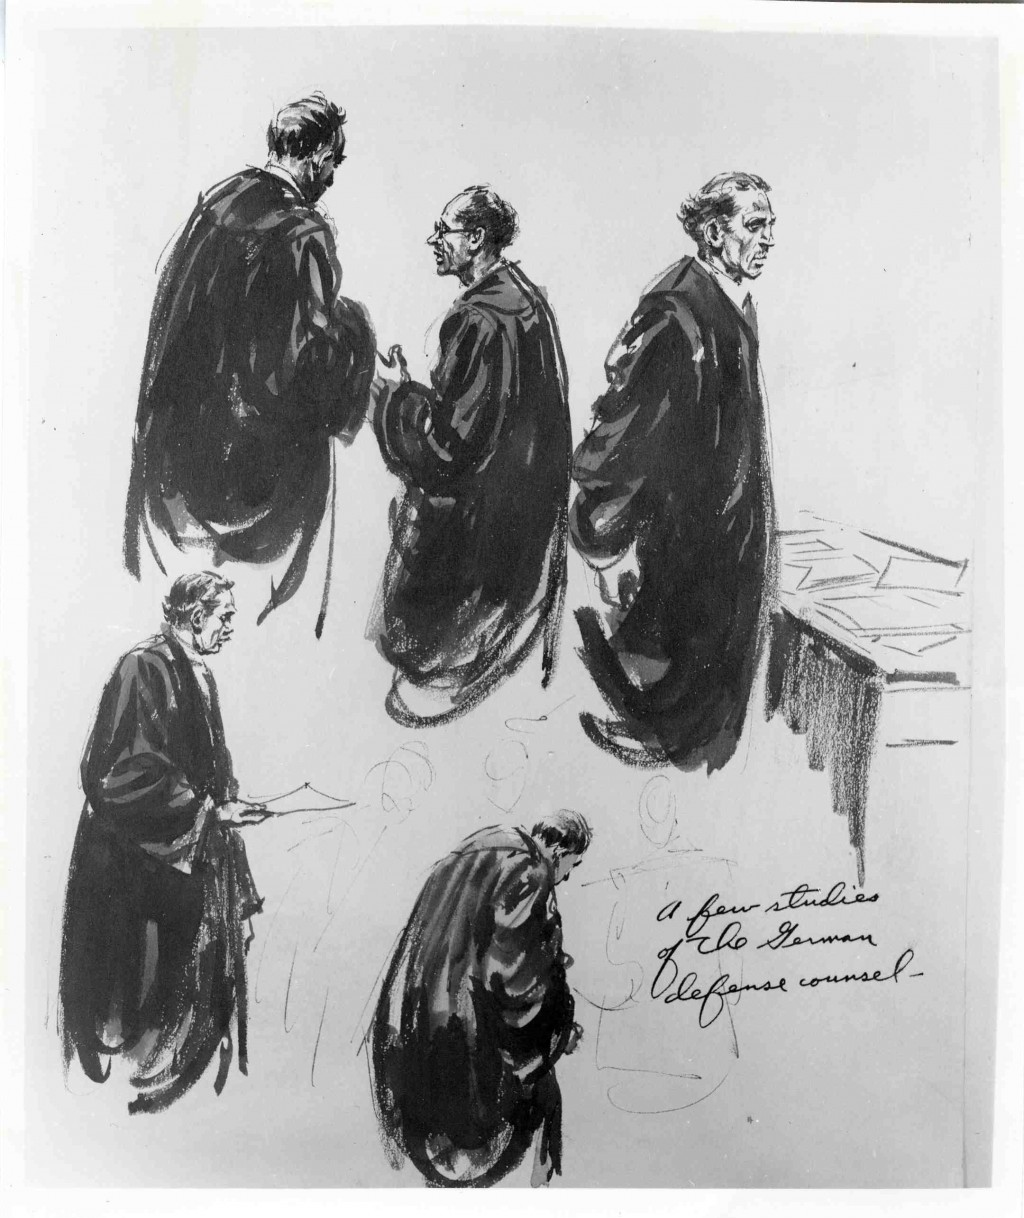 Edward Vebell courtroom sketch [LCID: 2005in8x]